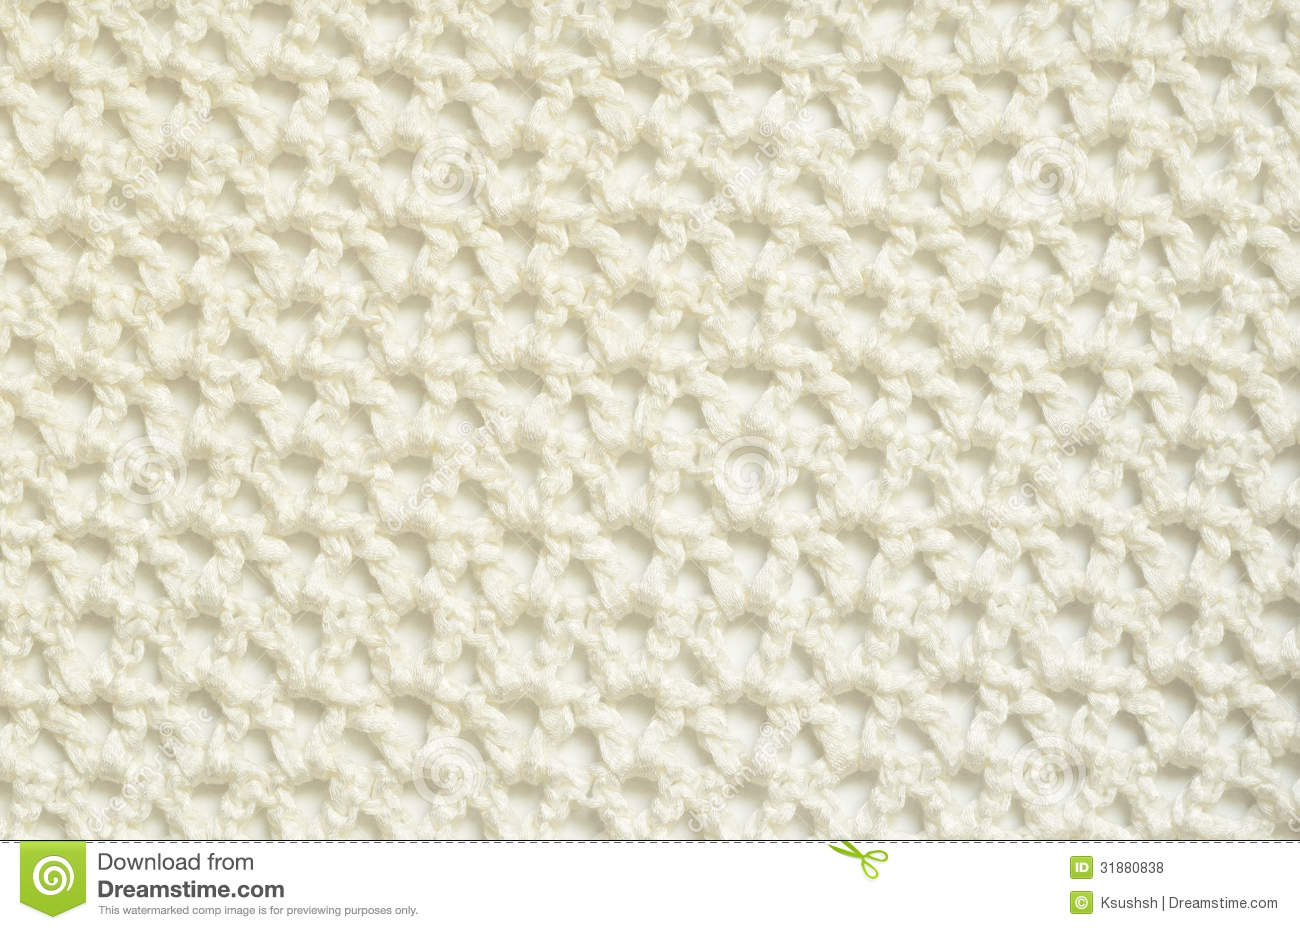 White crochet fabric for background.